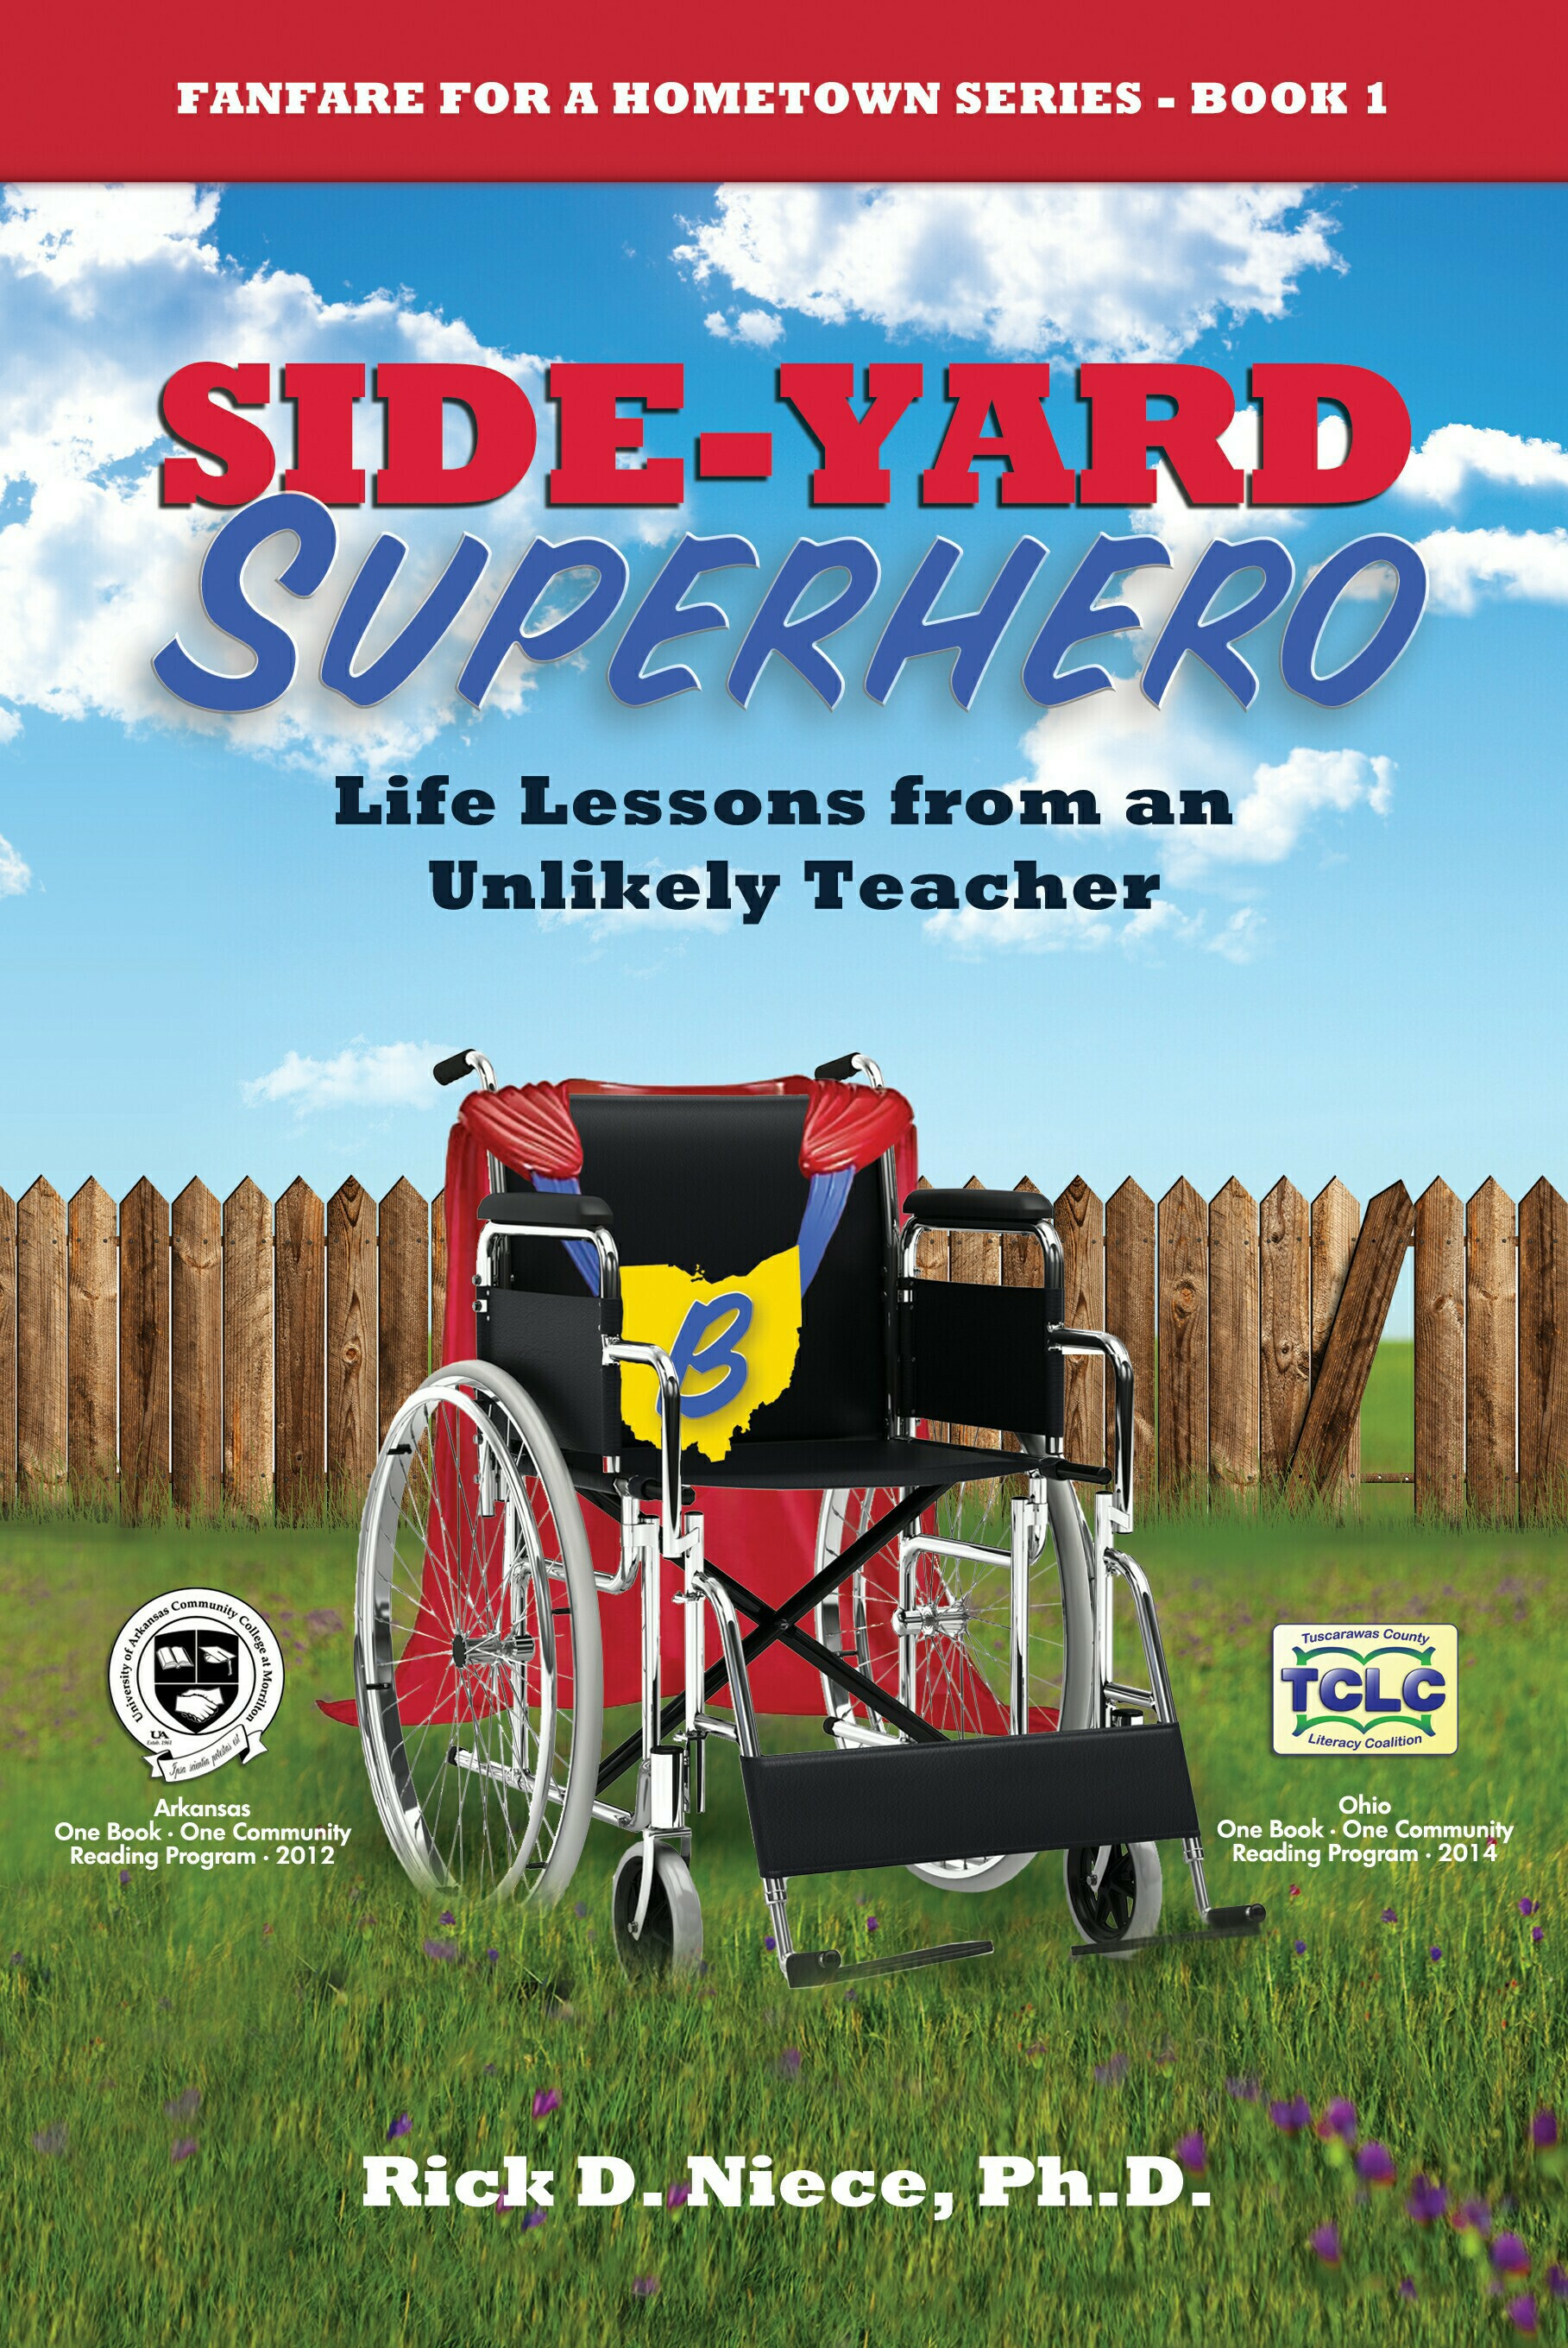 Side-Yard Superhero: Life Lessons from an Unlikely Teacher